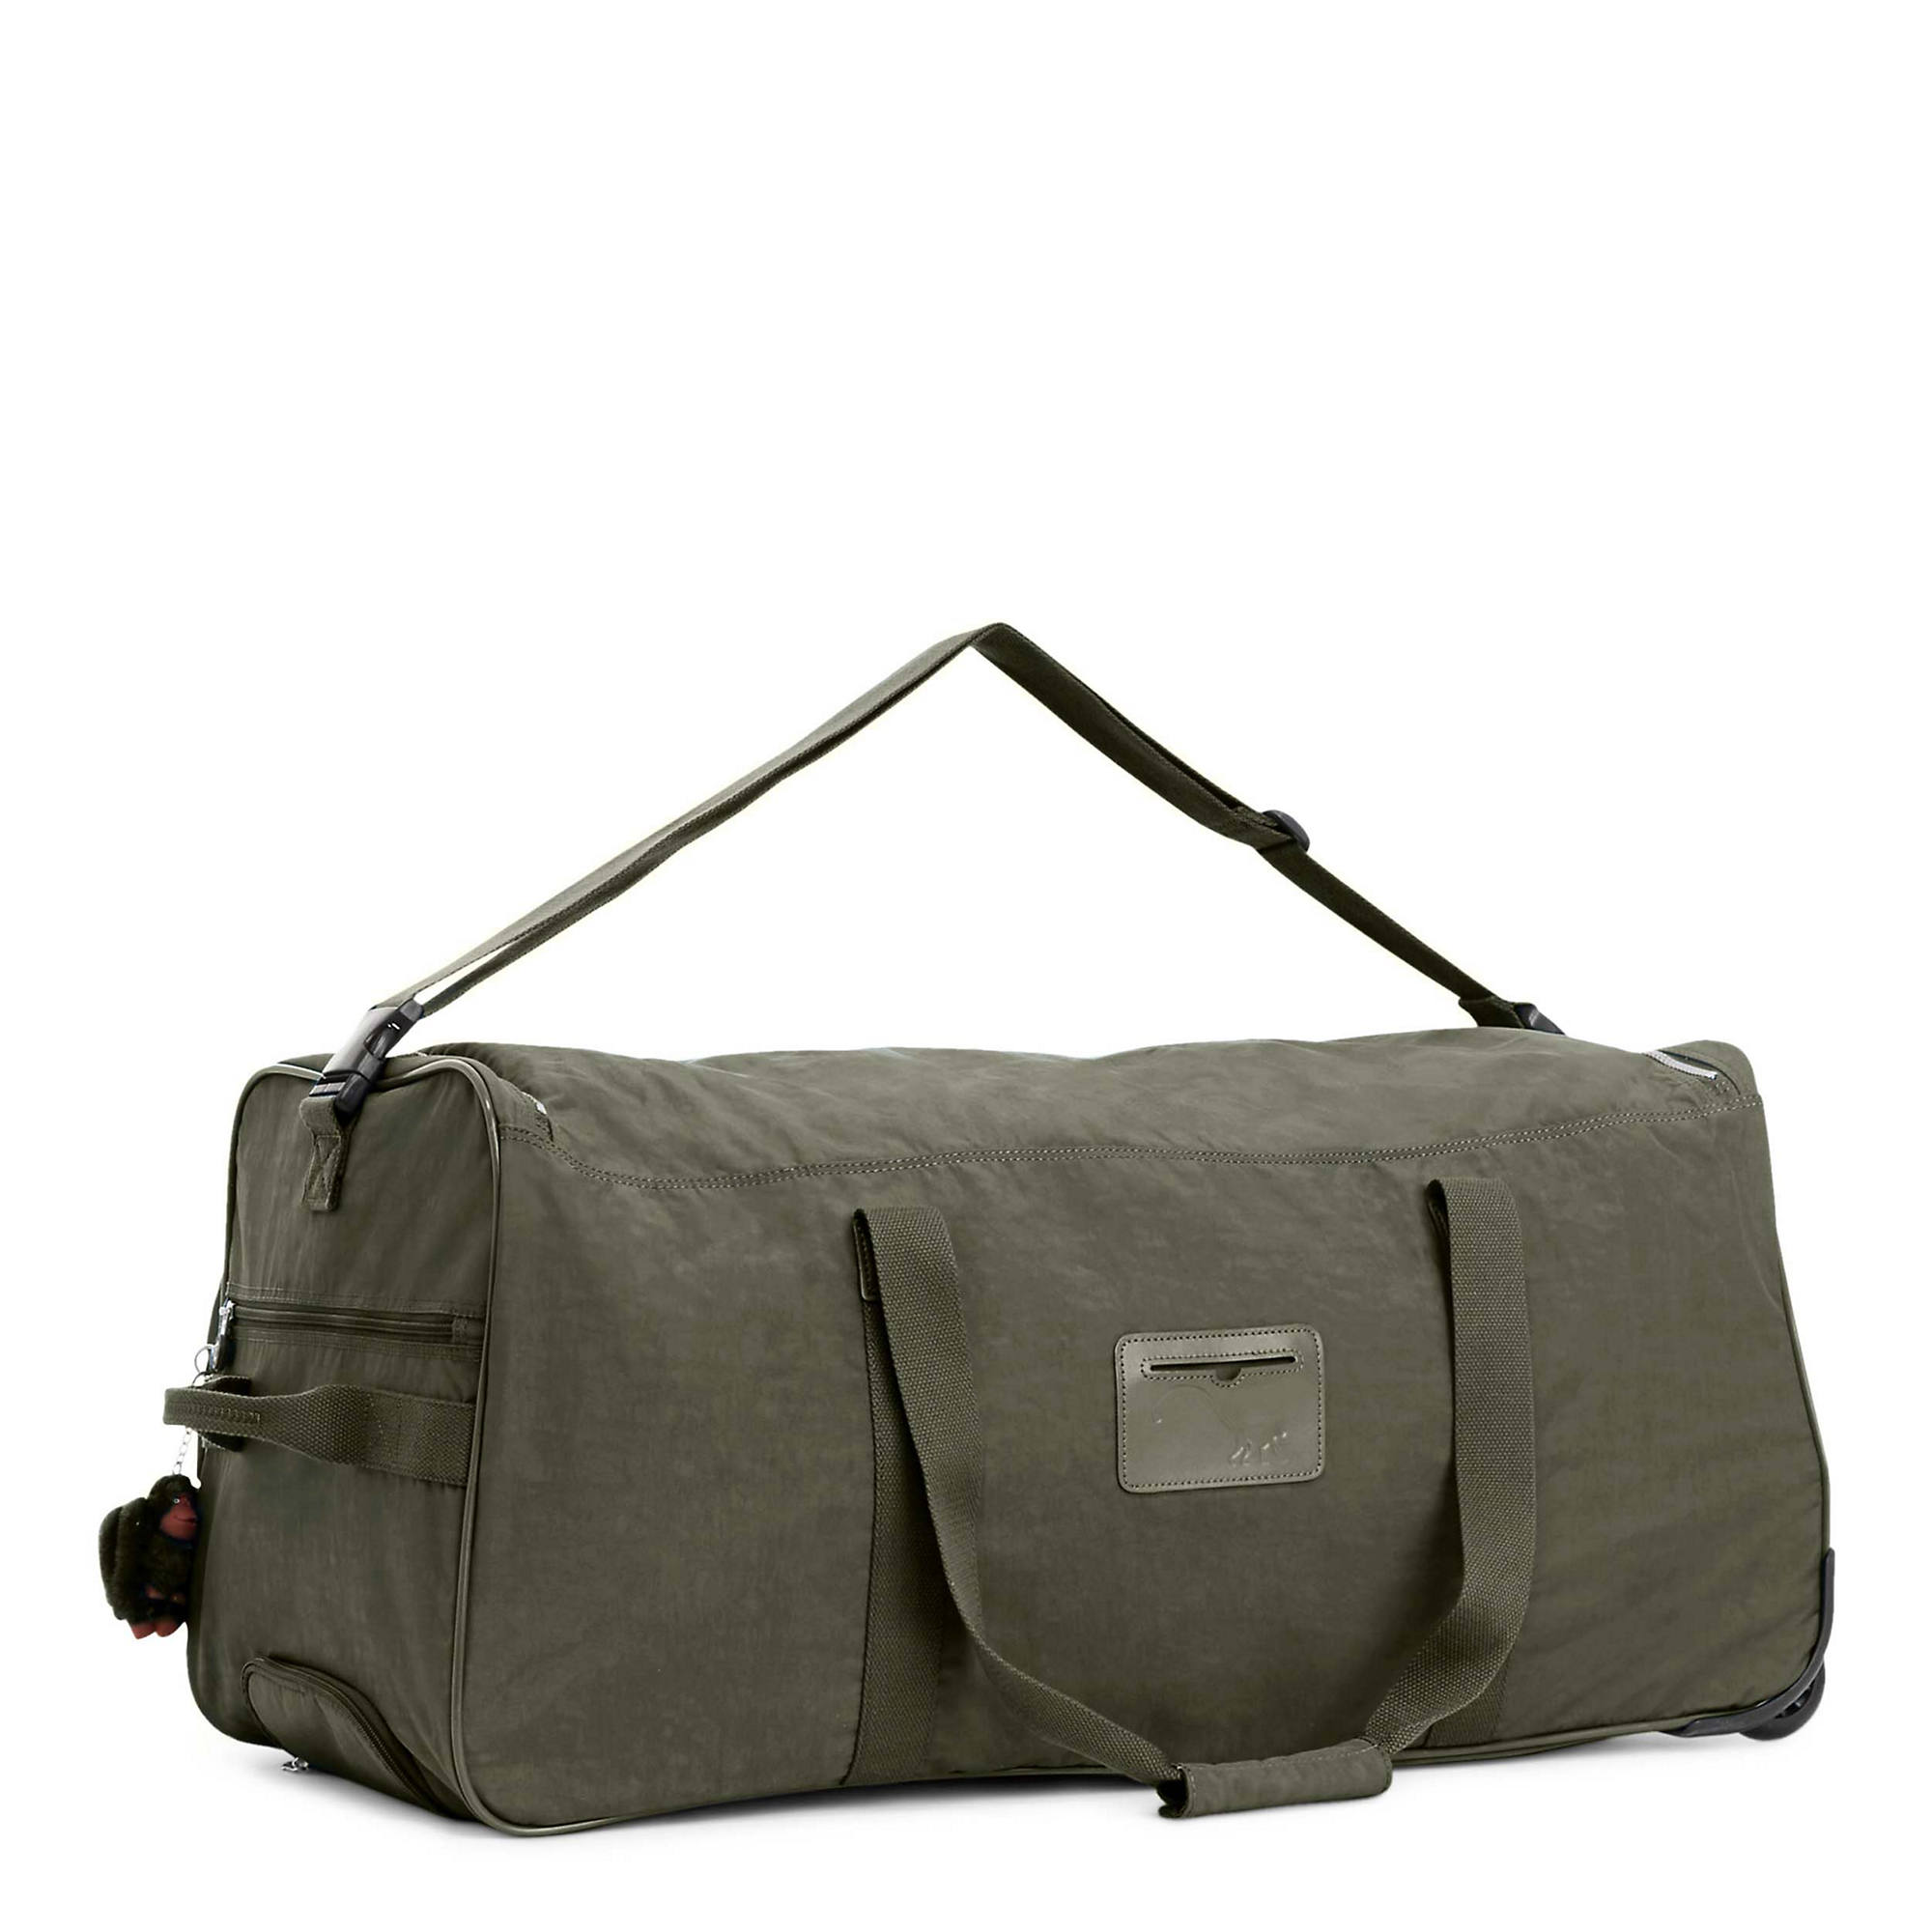 Discover Large Rolling Luggage Duffel,Jaded Green T,large 24645e291b